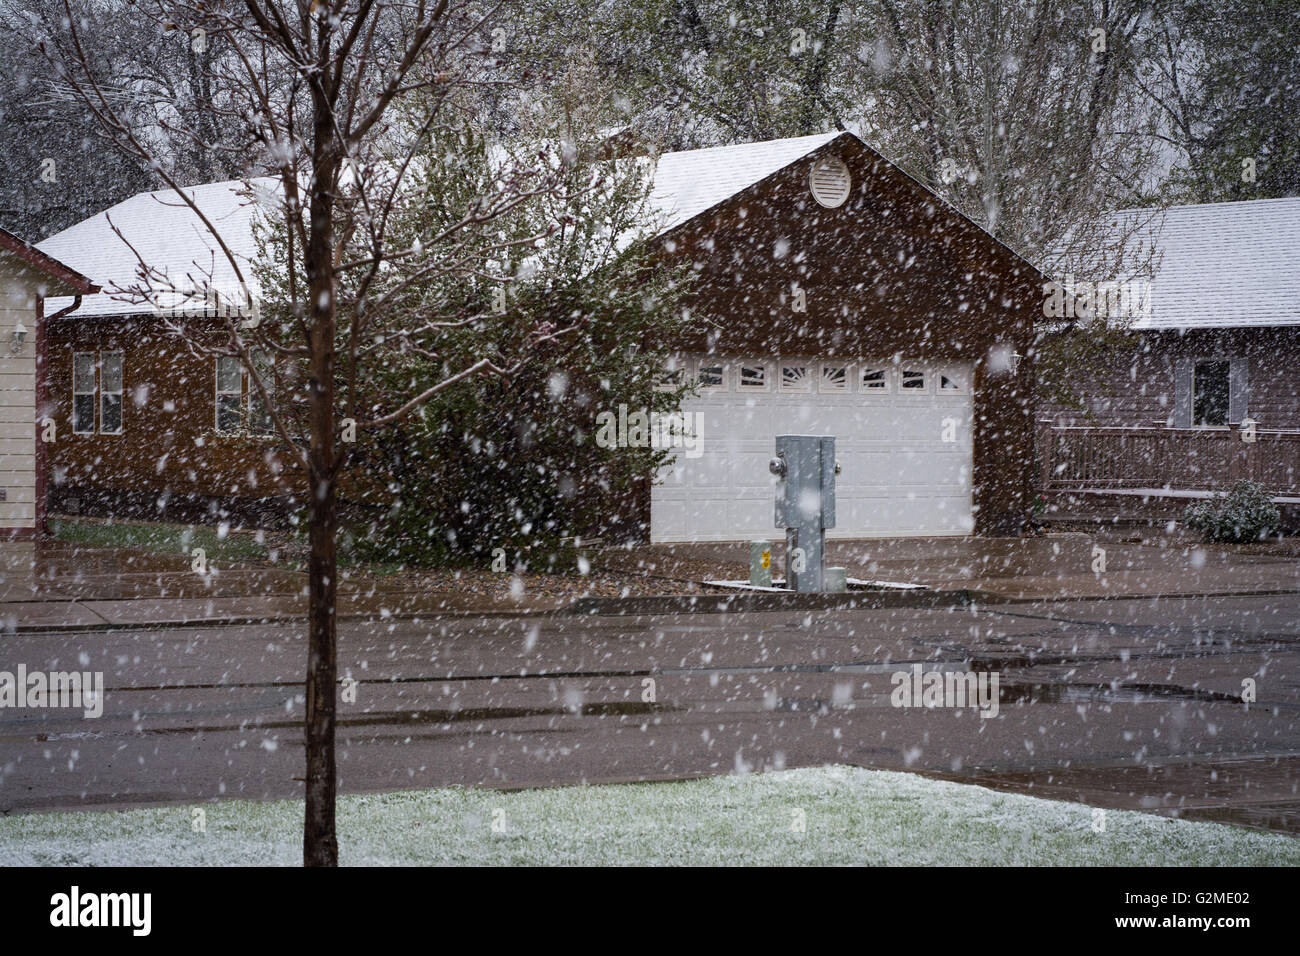 Snow in May in Dolores, Colorado, USA - Stock Image